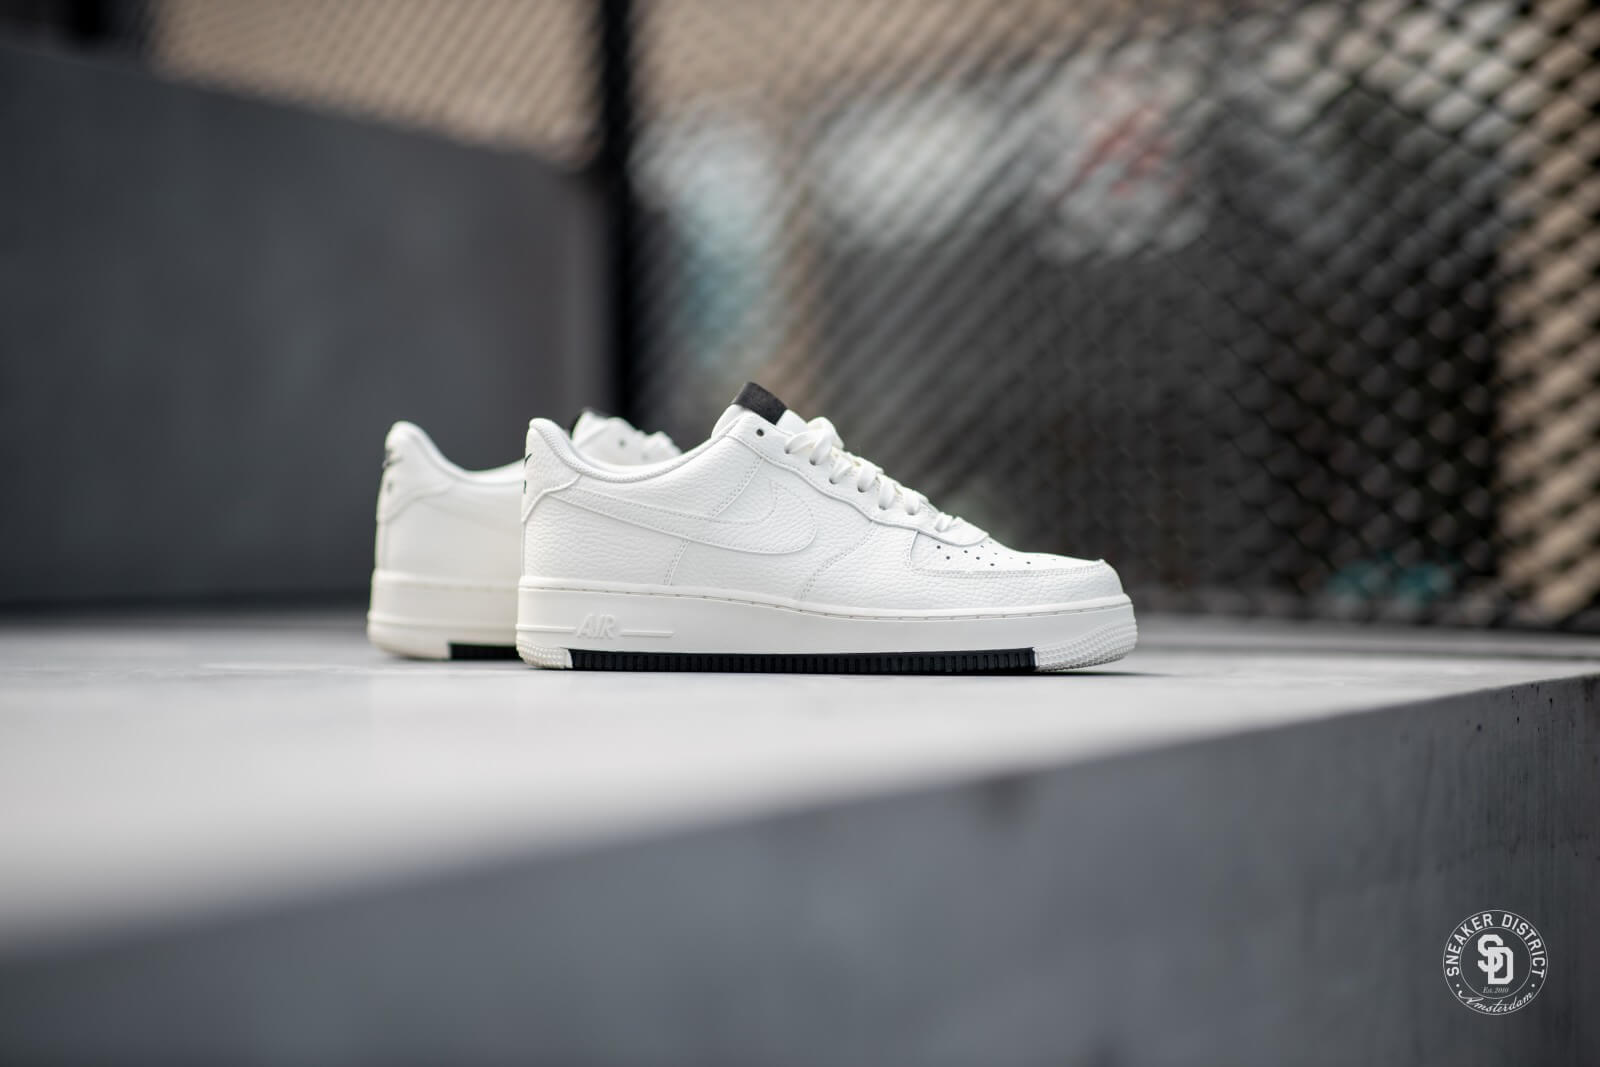 Nike Air Force 1 '07 1 Sail/Black